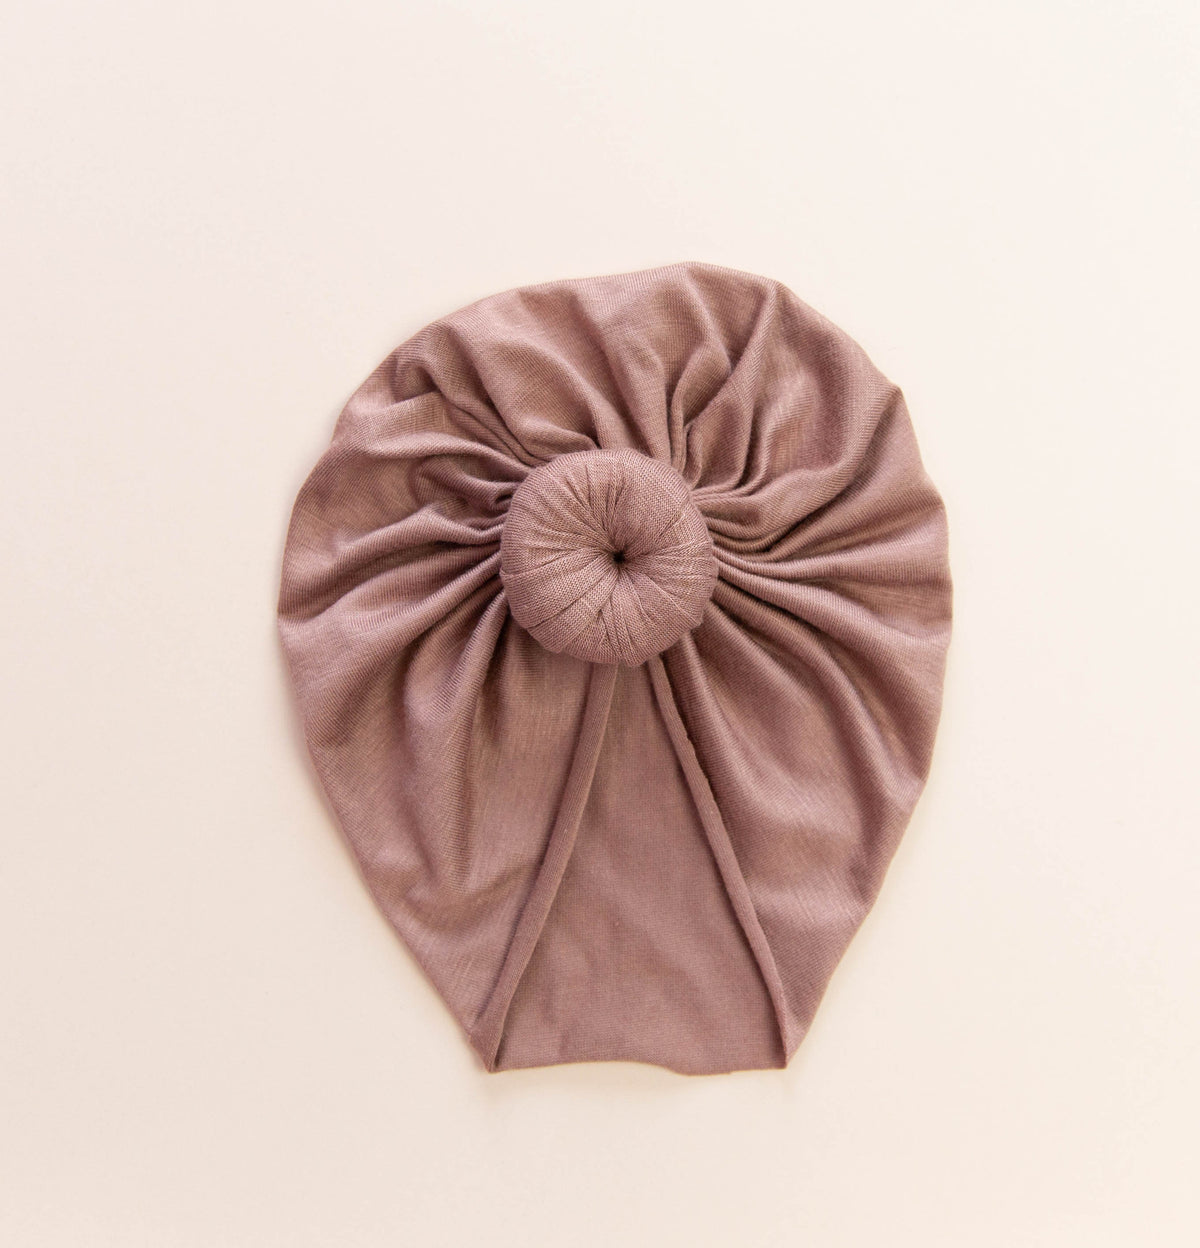 Rosewood Headwrap Turban | Knit Headwrap